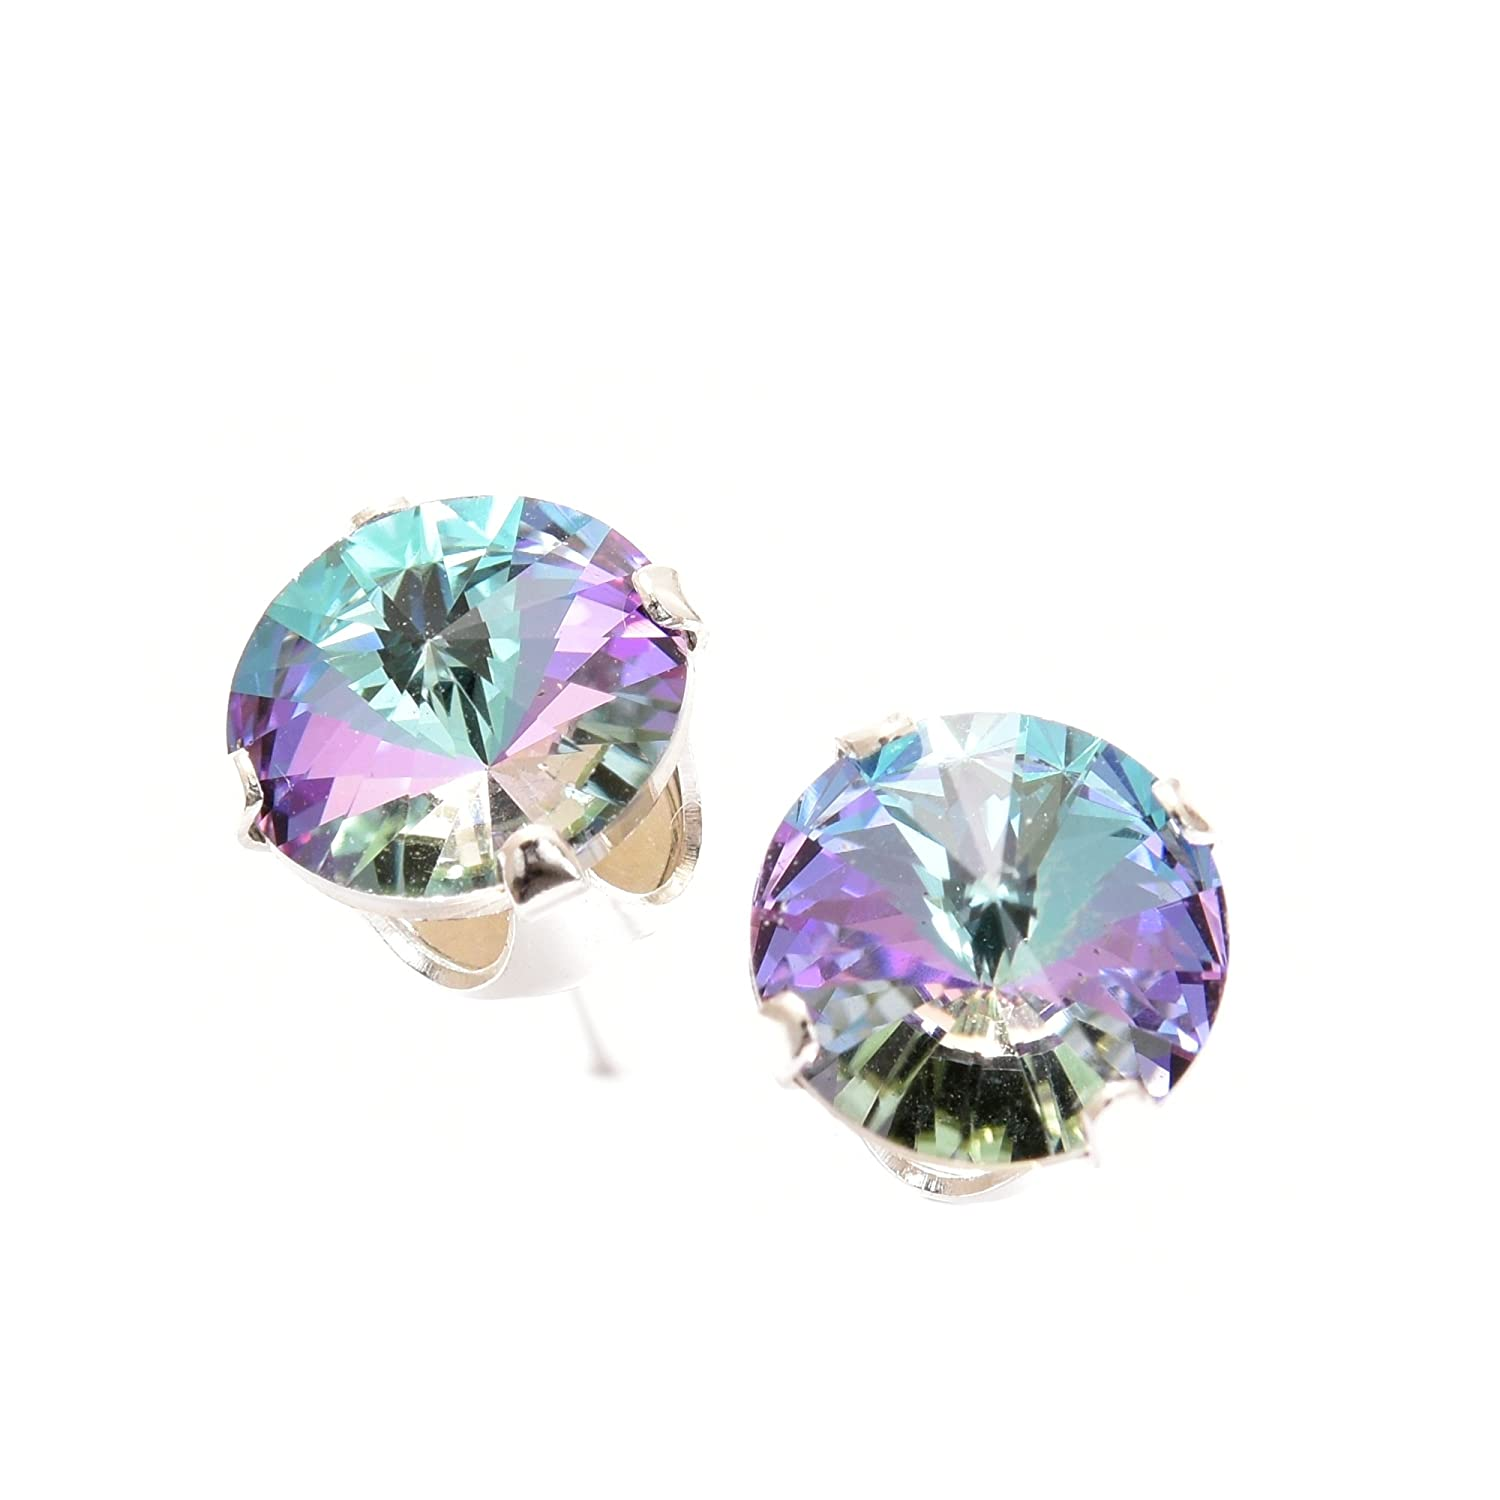 a7b5ca380 925 Sterling Silver stud earrings for women made with sparkling Starlight  crystal from Swarovski®.